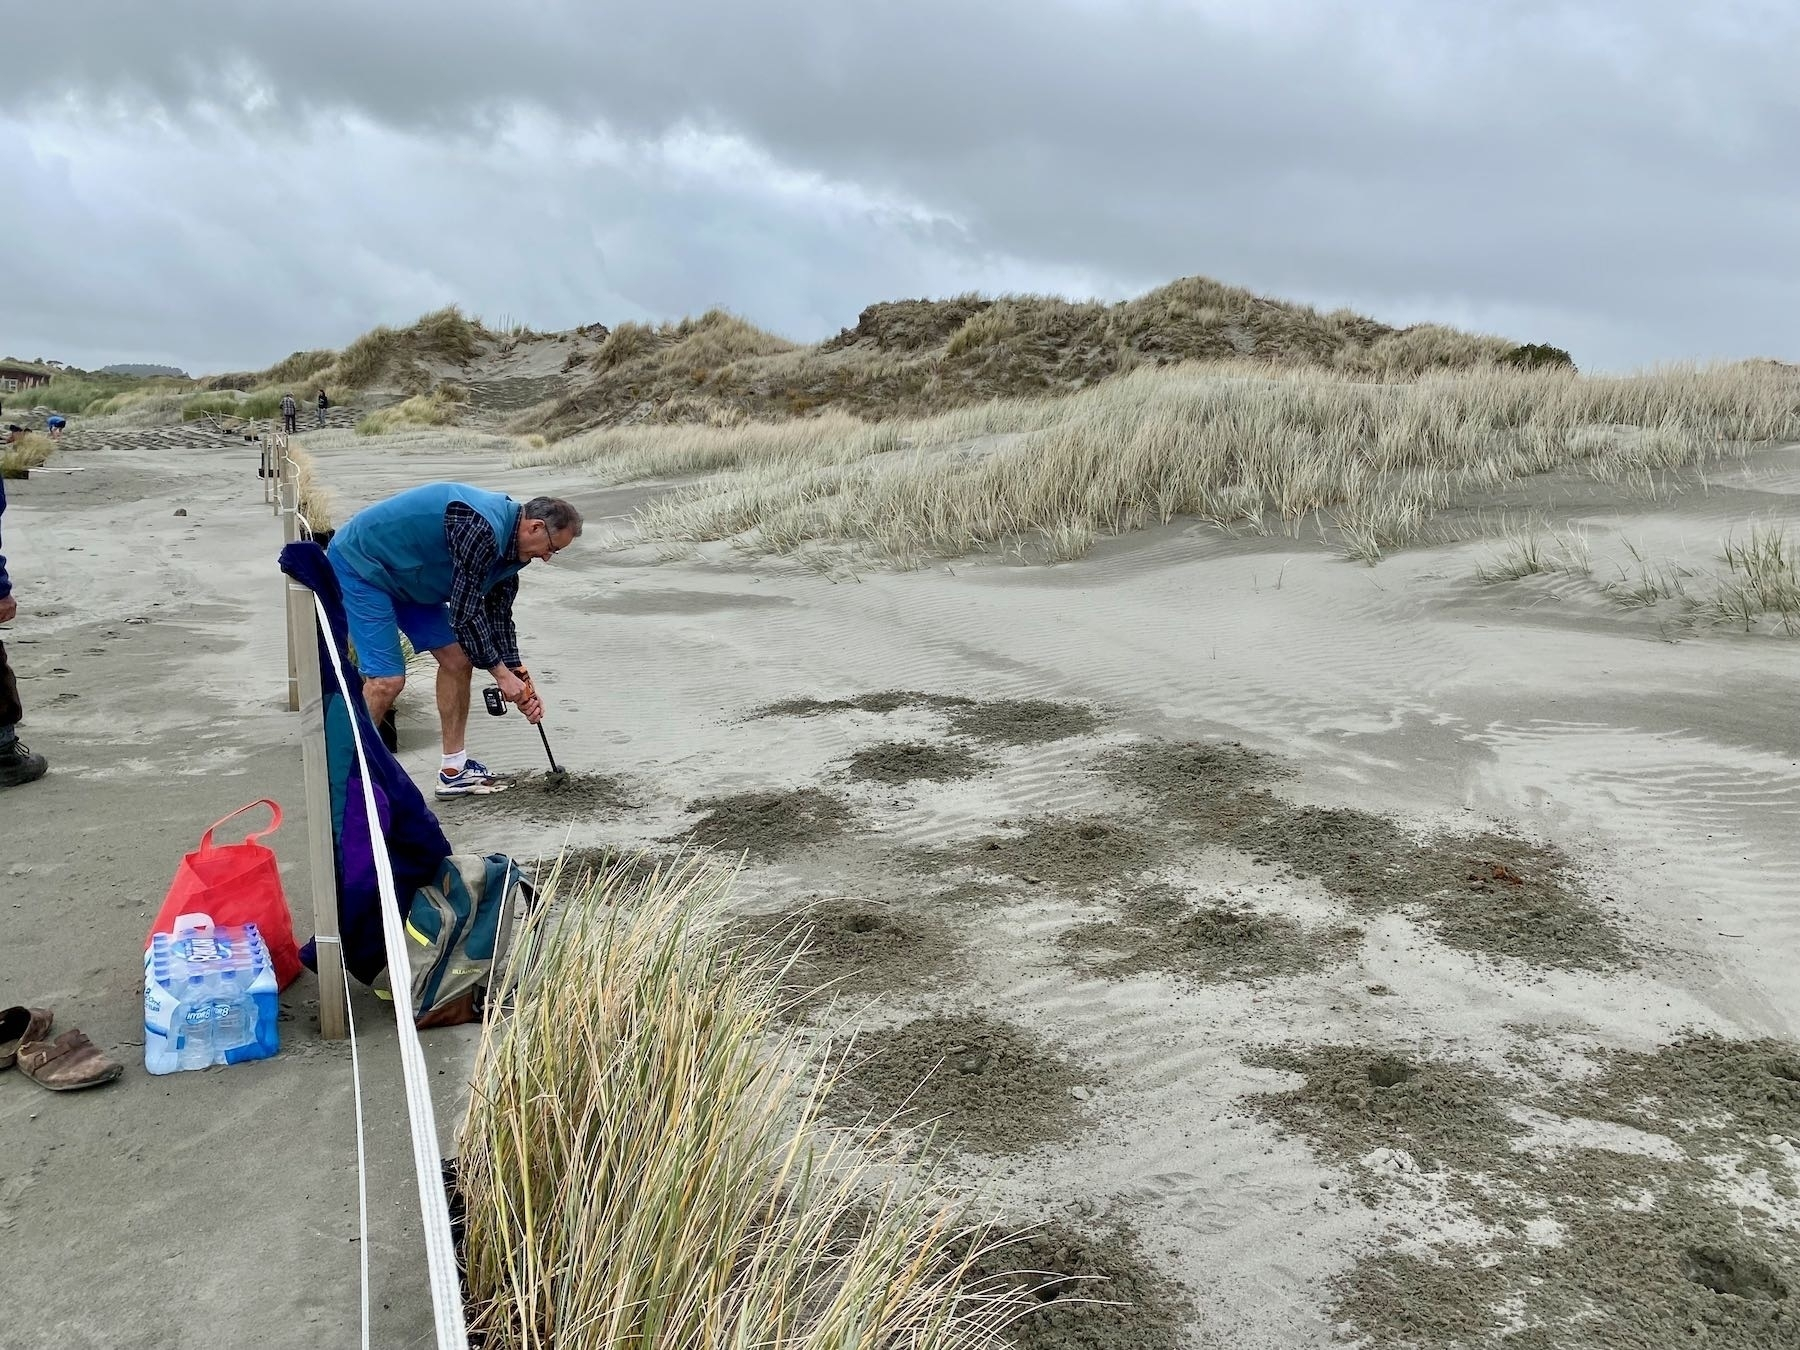 A person drilling planting holes in the sand.